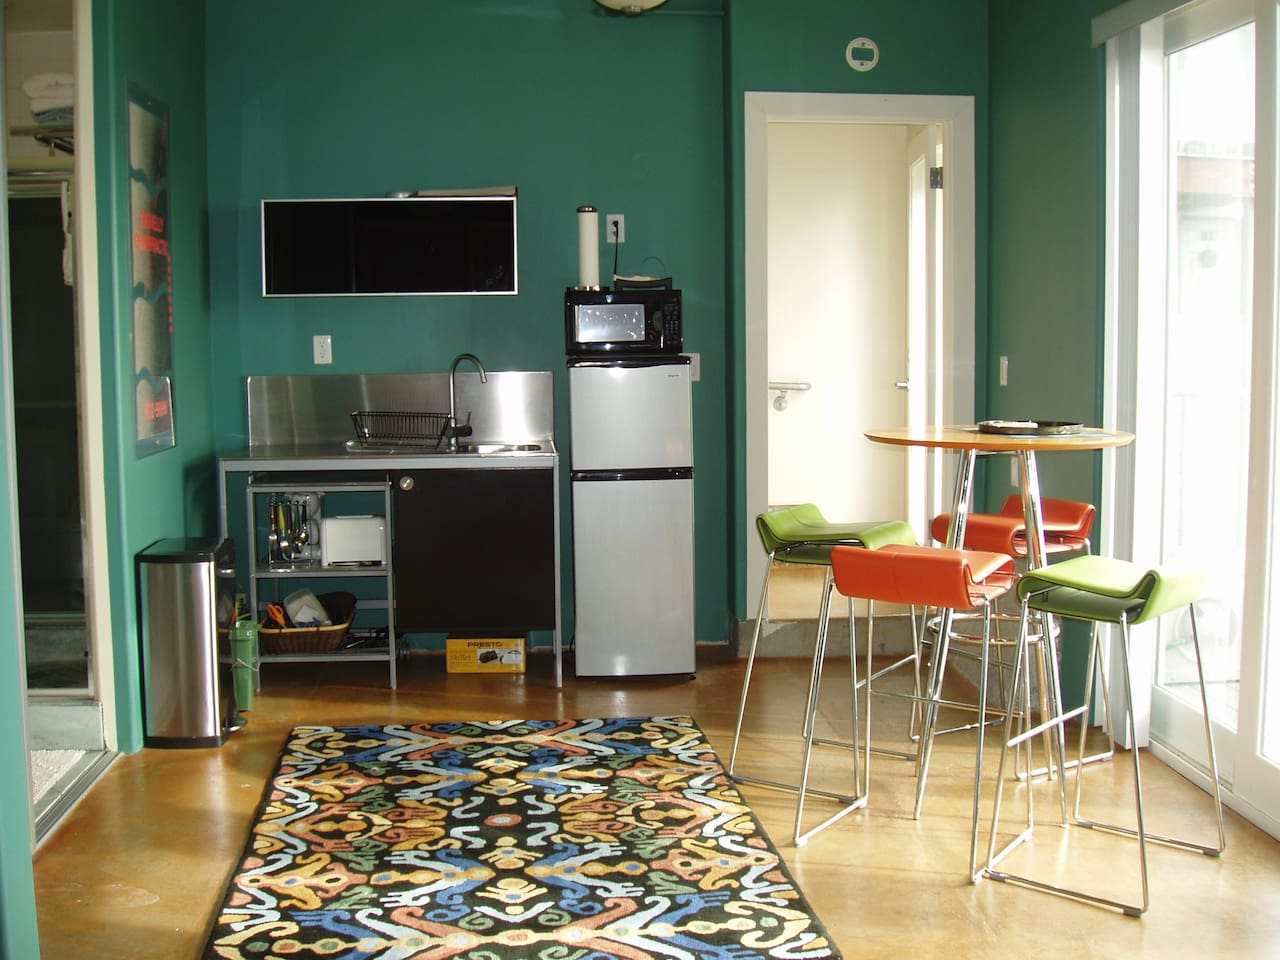 Efficiency Kitchen and Dining Area